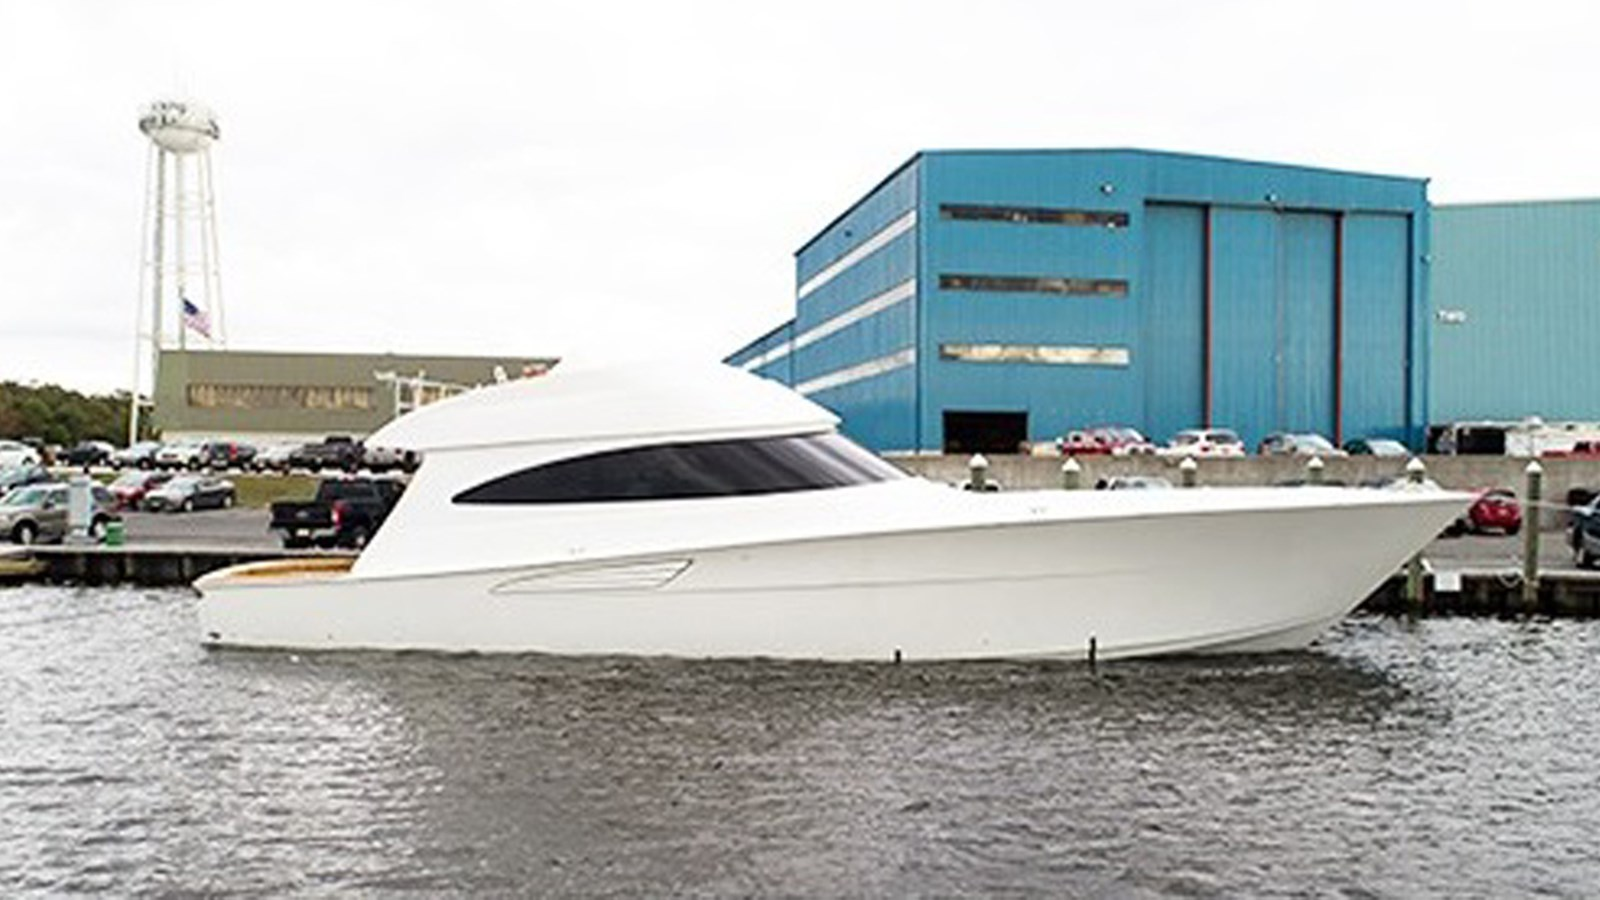 2018 VIKING 68 Convertible (VK68-002) For Sale